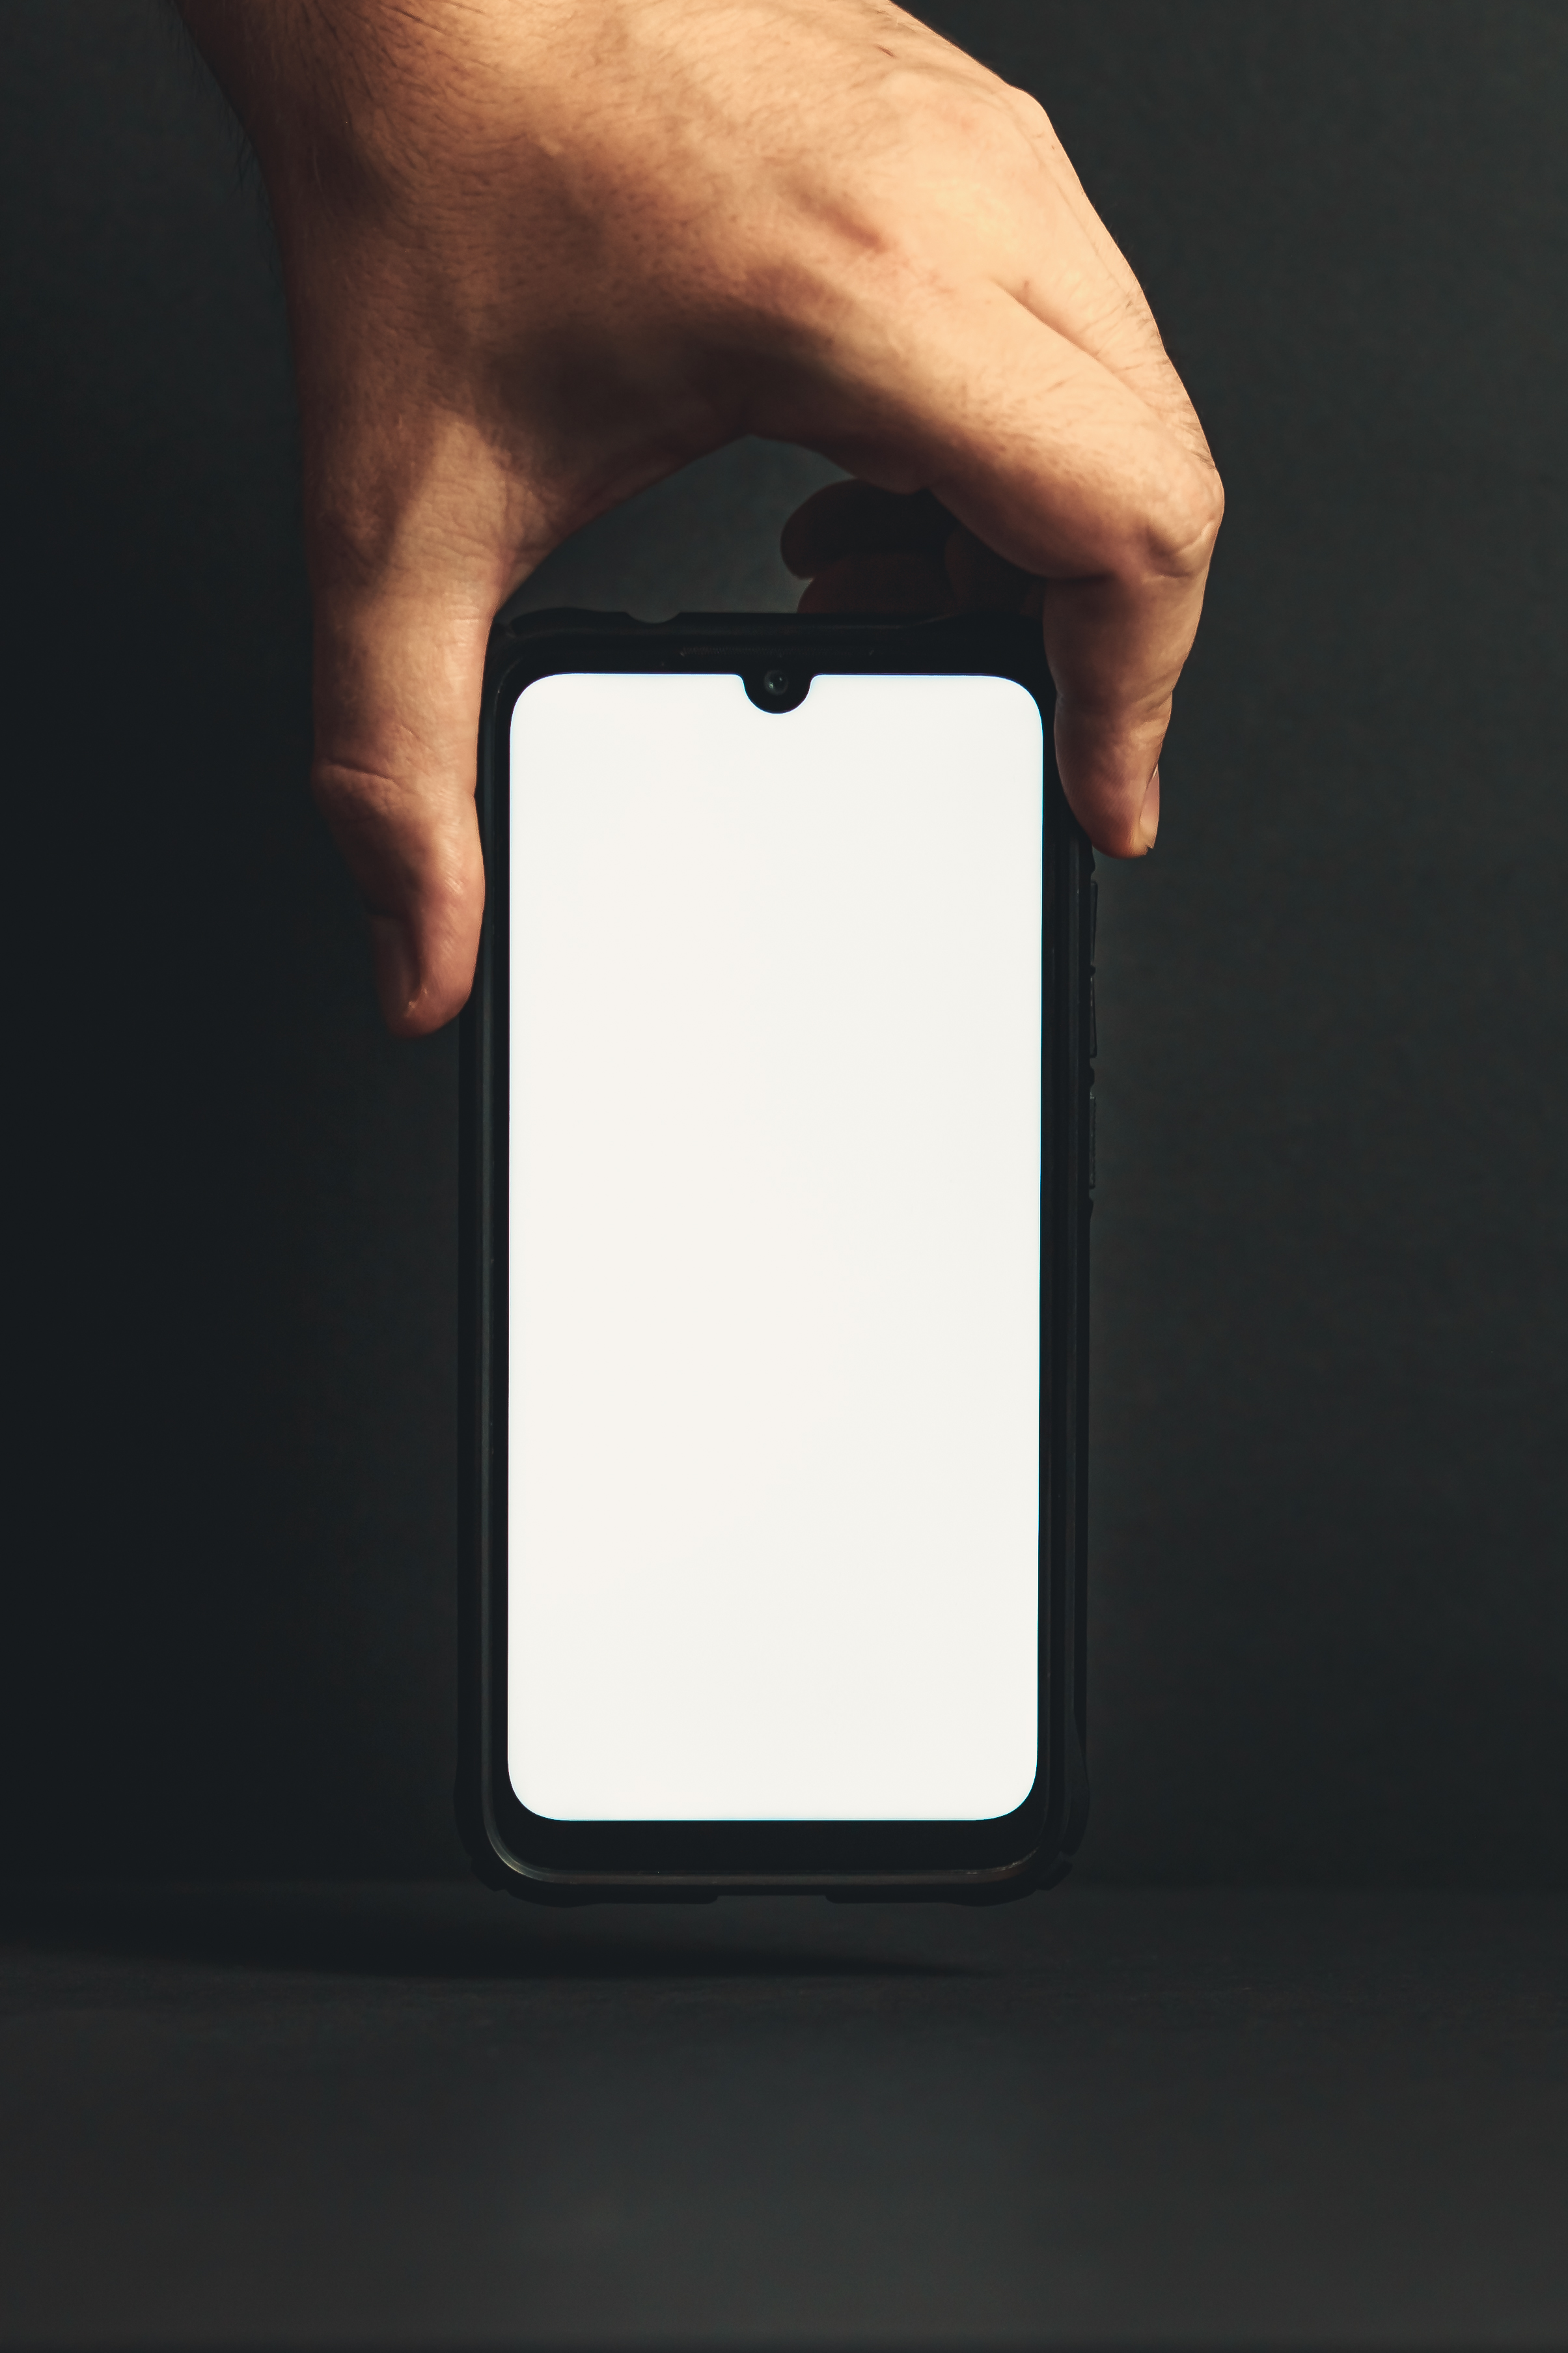 Hand grabbing a blank phone from the top